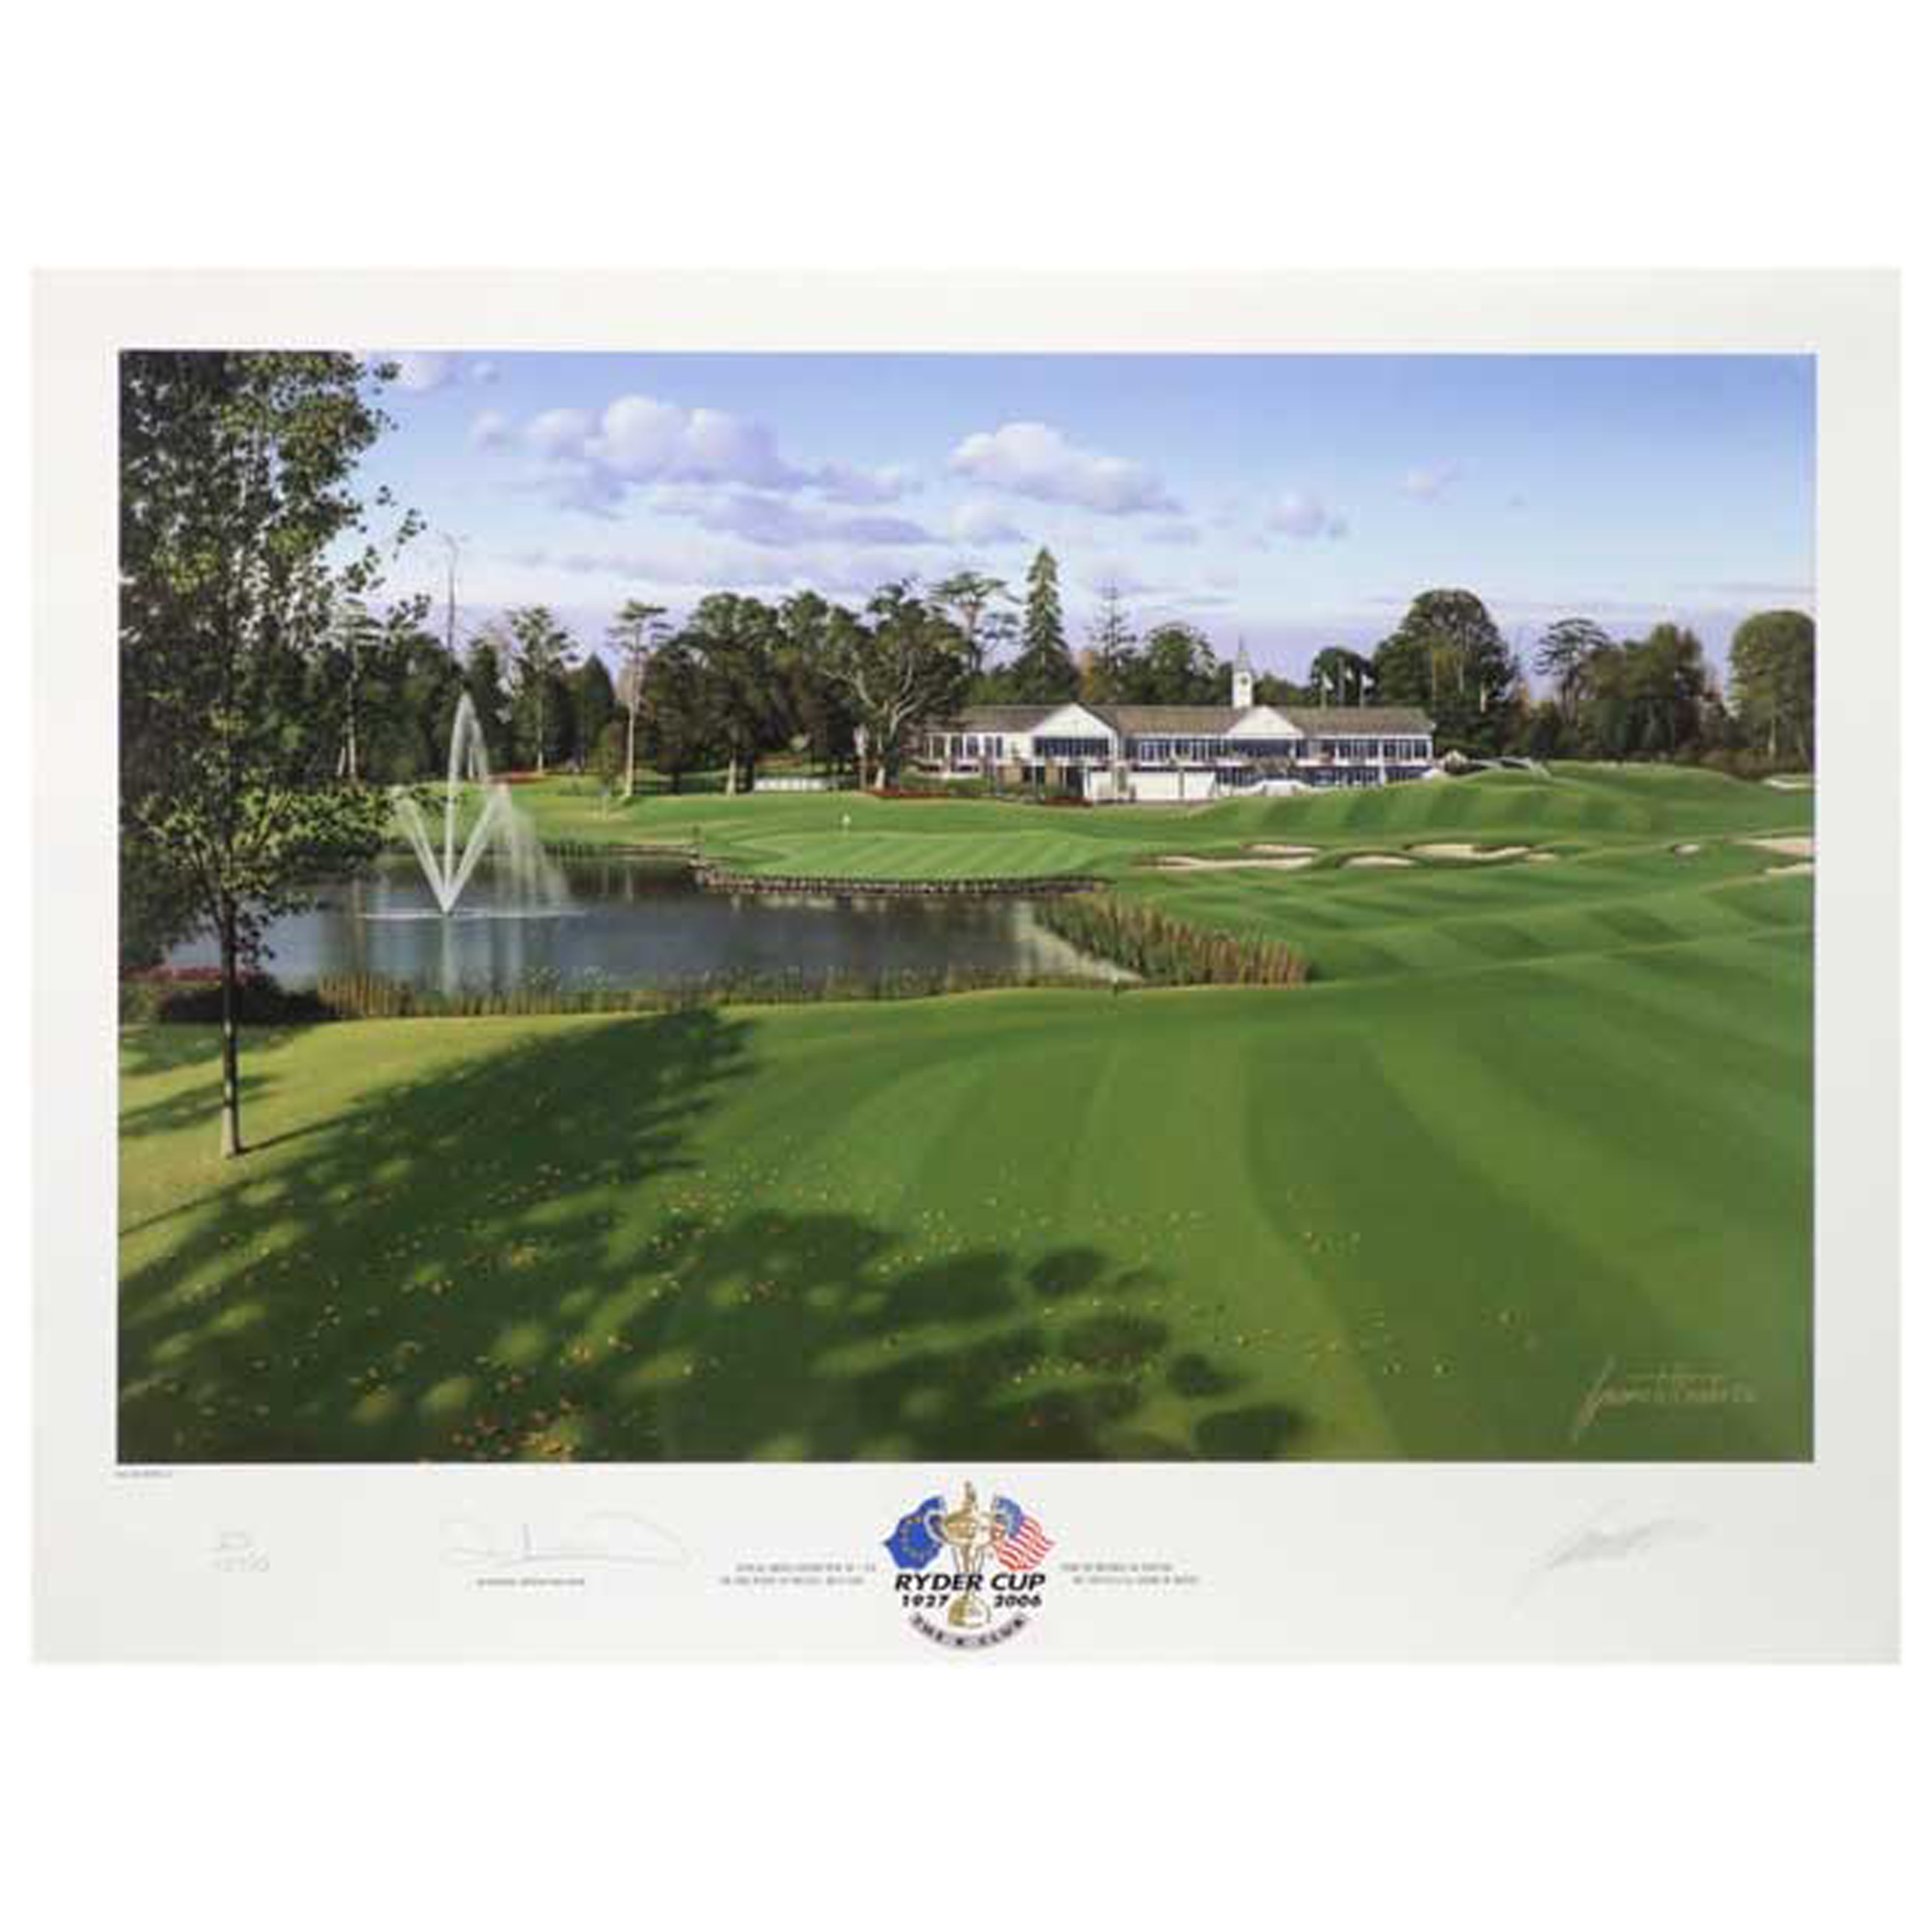 The Ryder Cup K Club 2006 18th Hole Limited Edition Print